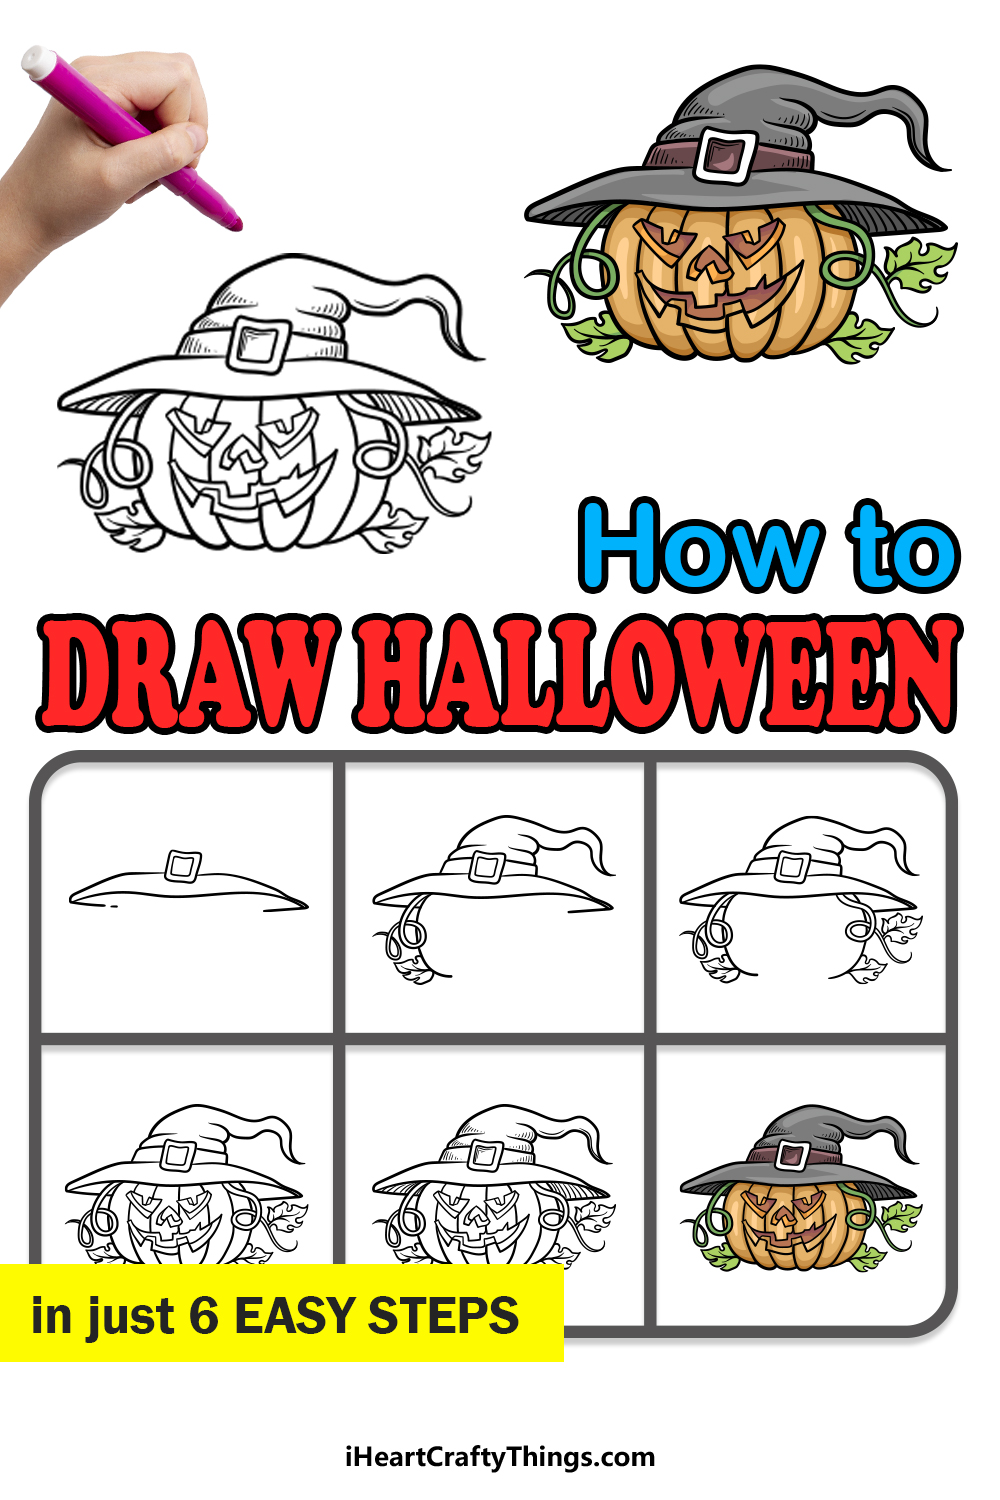 how to draw Halloween in 6 easy steps